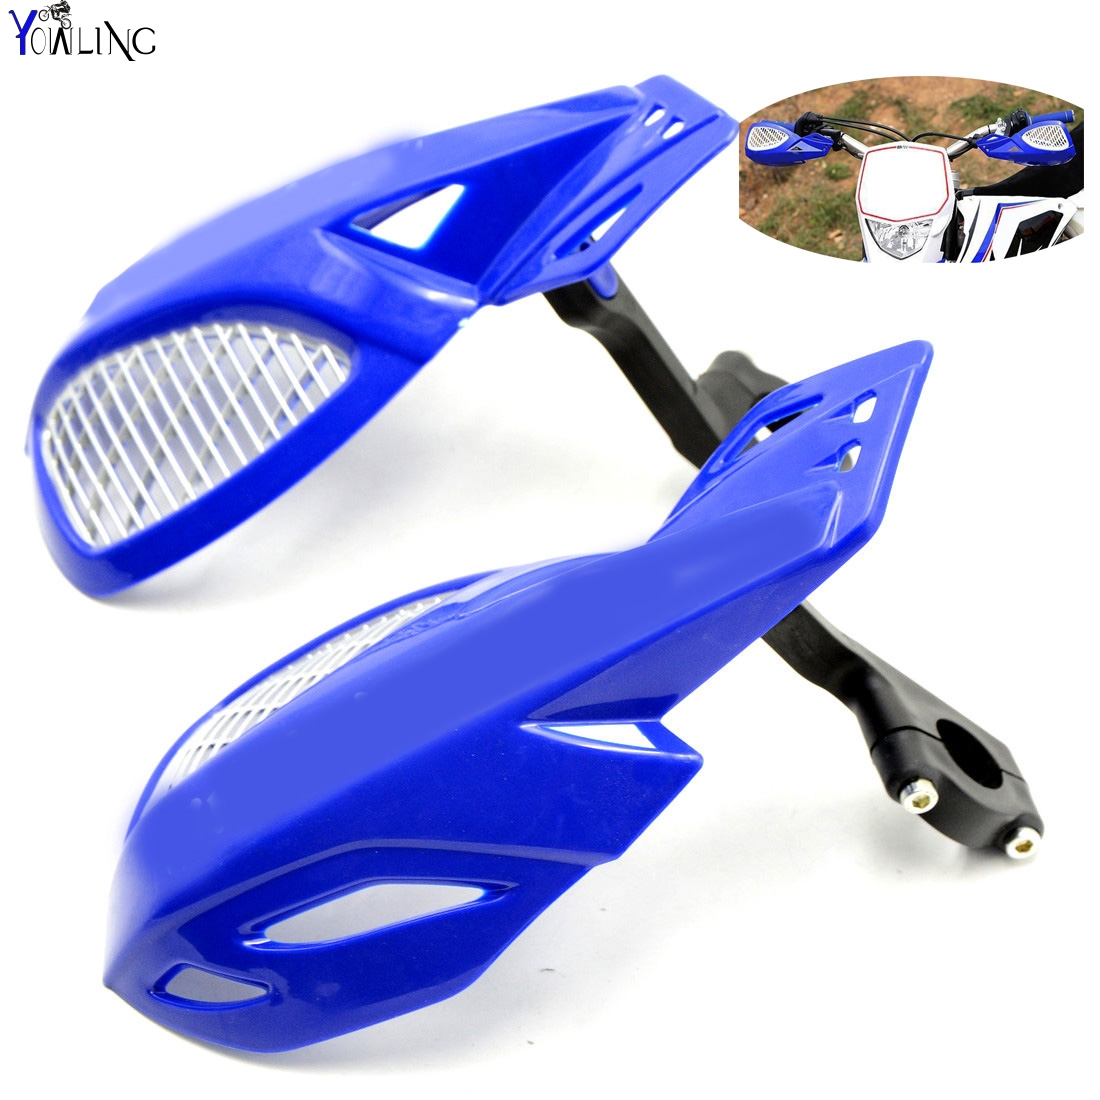 Dirt bike Motorcycle 7/8''22mm handlebar brake hand guard For YAMAHA DT230LANZA PW50 PW80 RT100 SEROW225 dirt bike motorcycle 7 8 22mm handlebar brake hand guard for yamaha yz250x yz426f yz450f yz450fx yz80 yz85